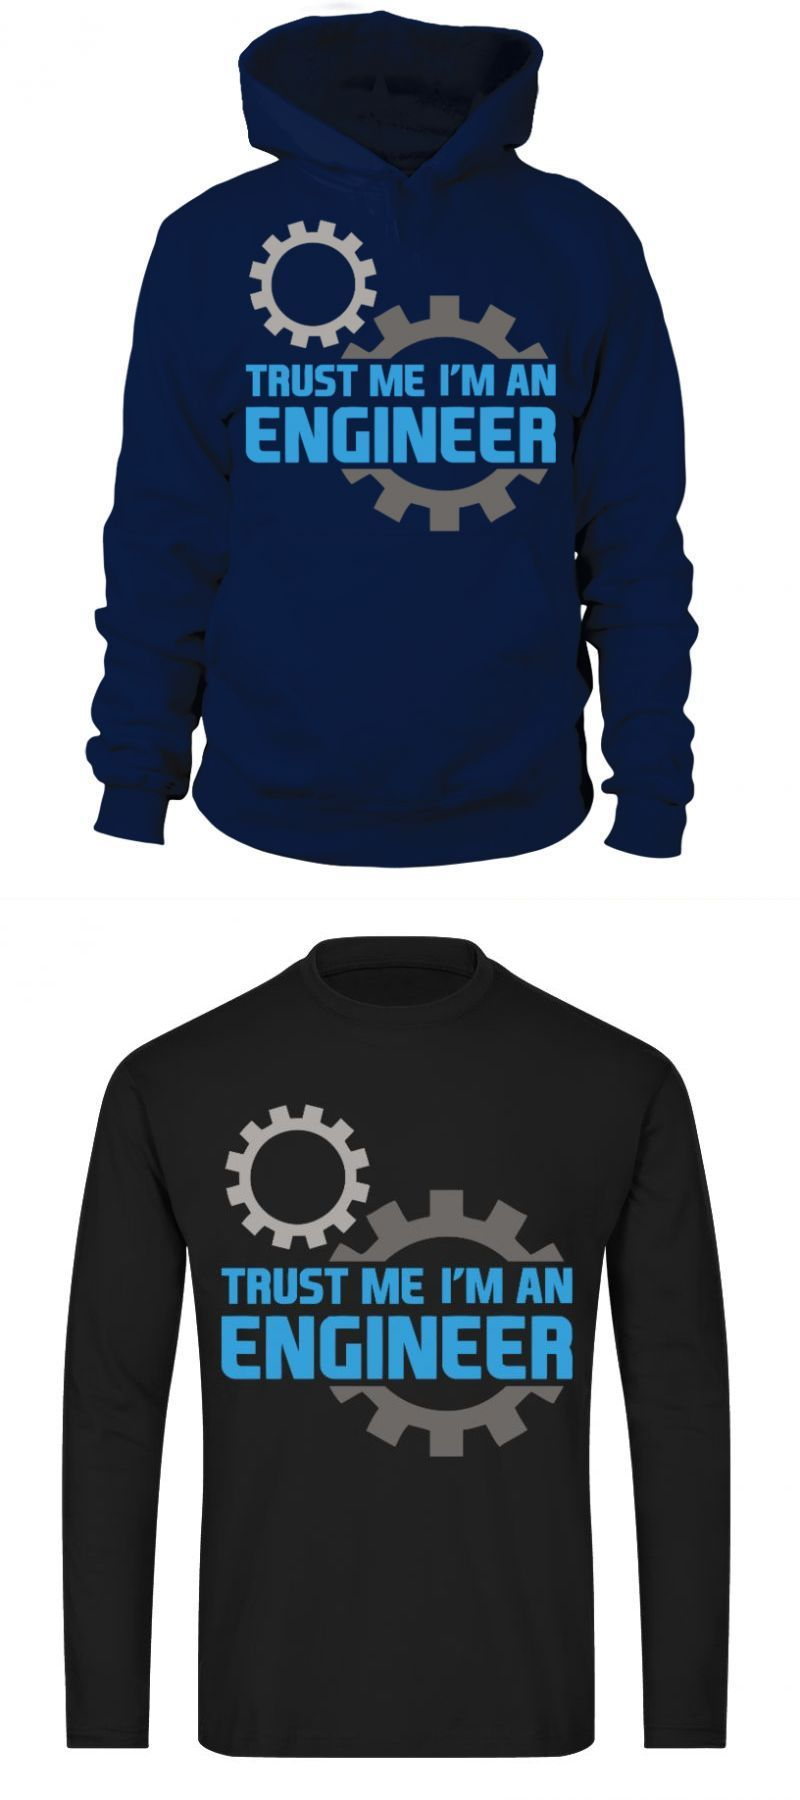 ab6d3d753e9b8 Arguing with an engineer t shirt trust me i m an engineer mechanical engineering  t shirt buy online  arguing  with  an  engineer  shirt  trust  me  i m ...